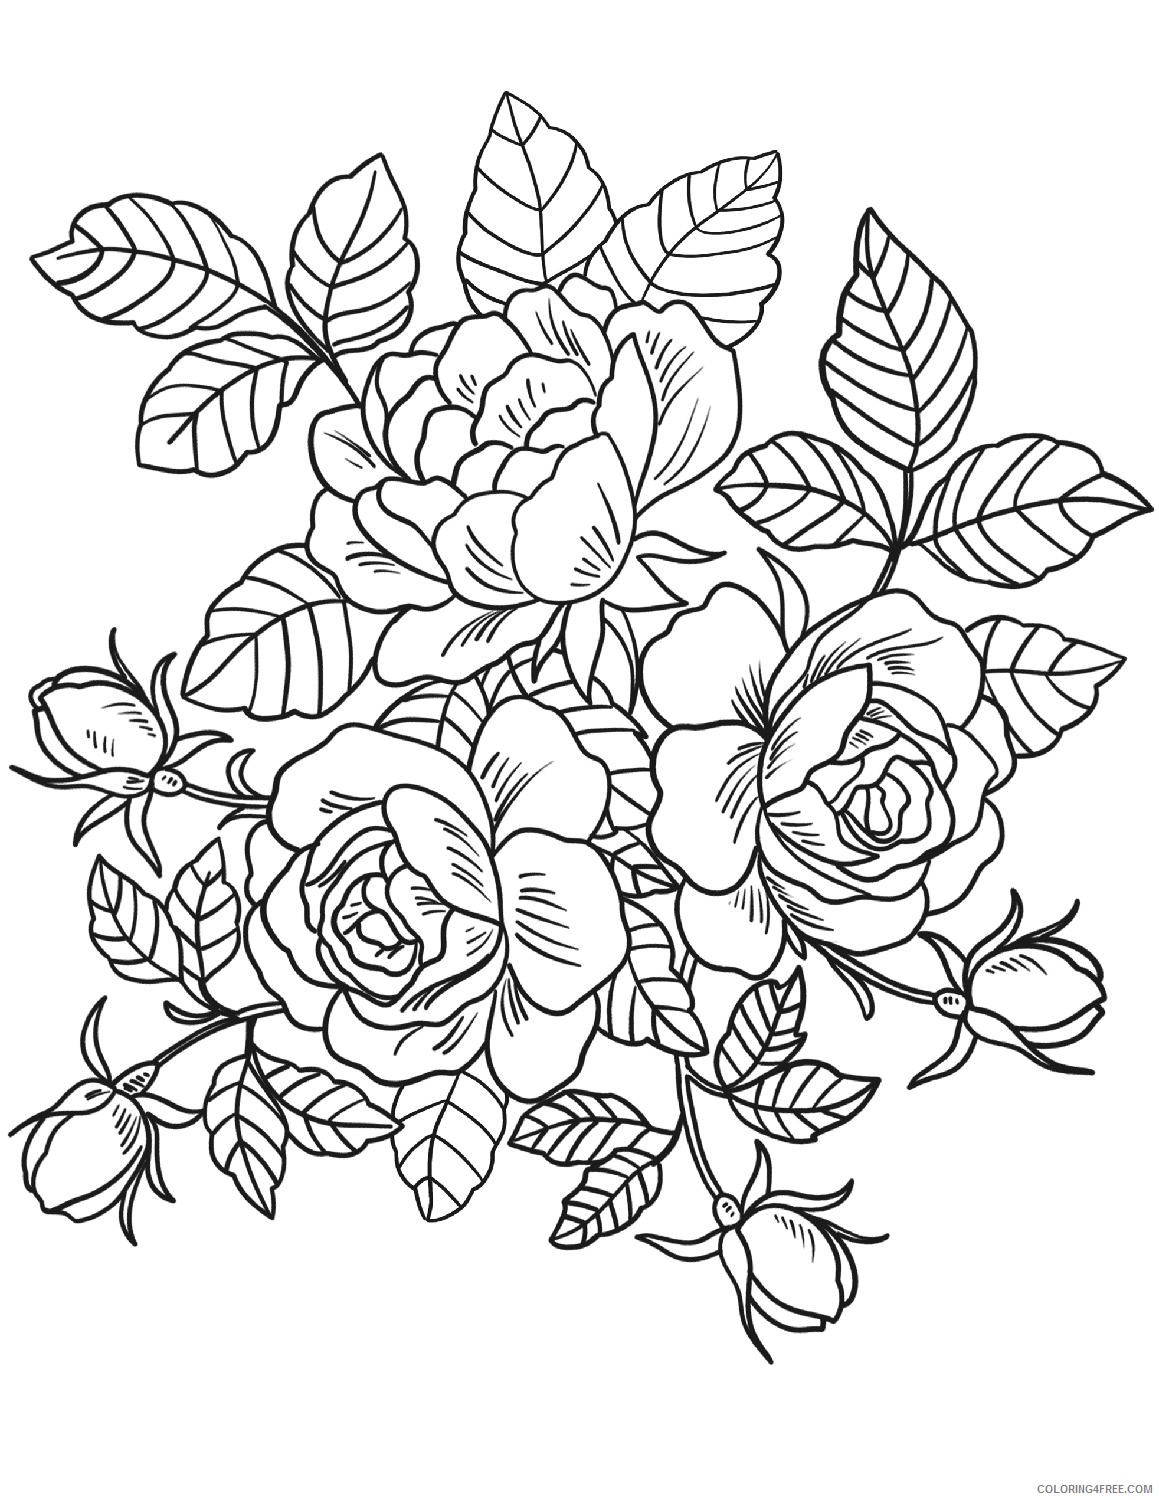 Adult Floral Coloring Pages Floral Printable 2020 324 Coloring4free